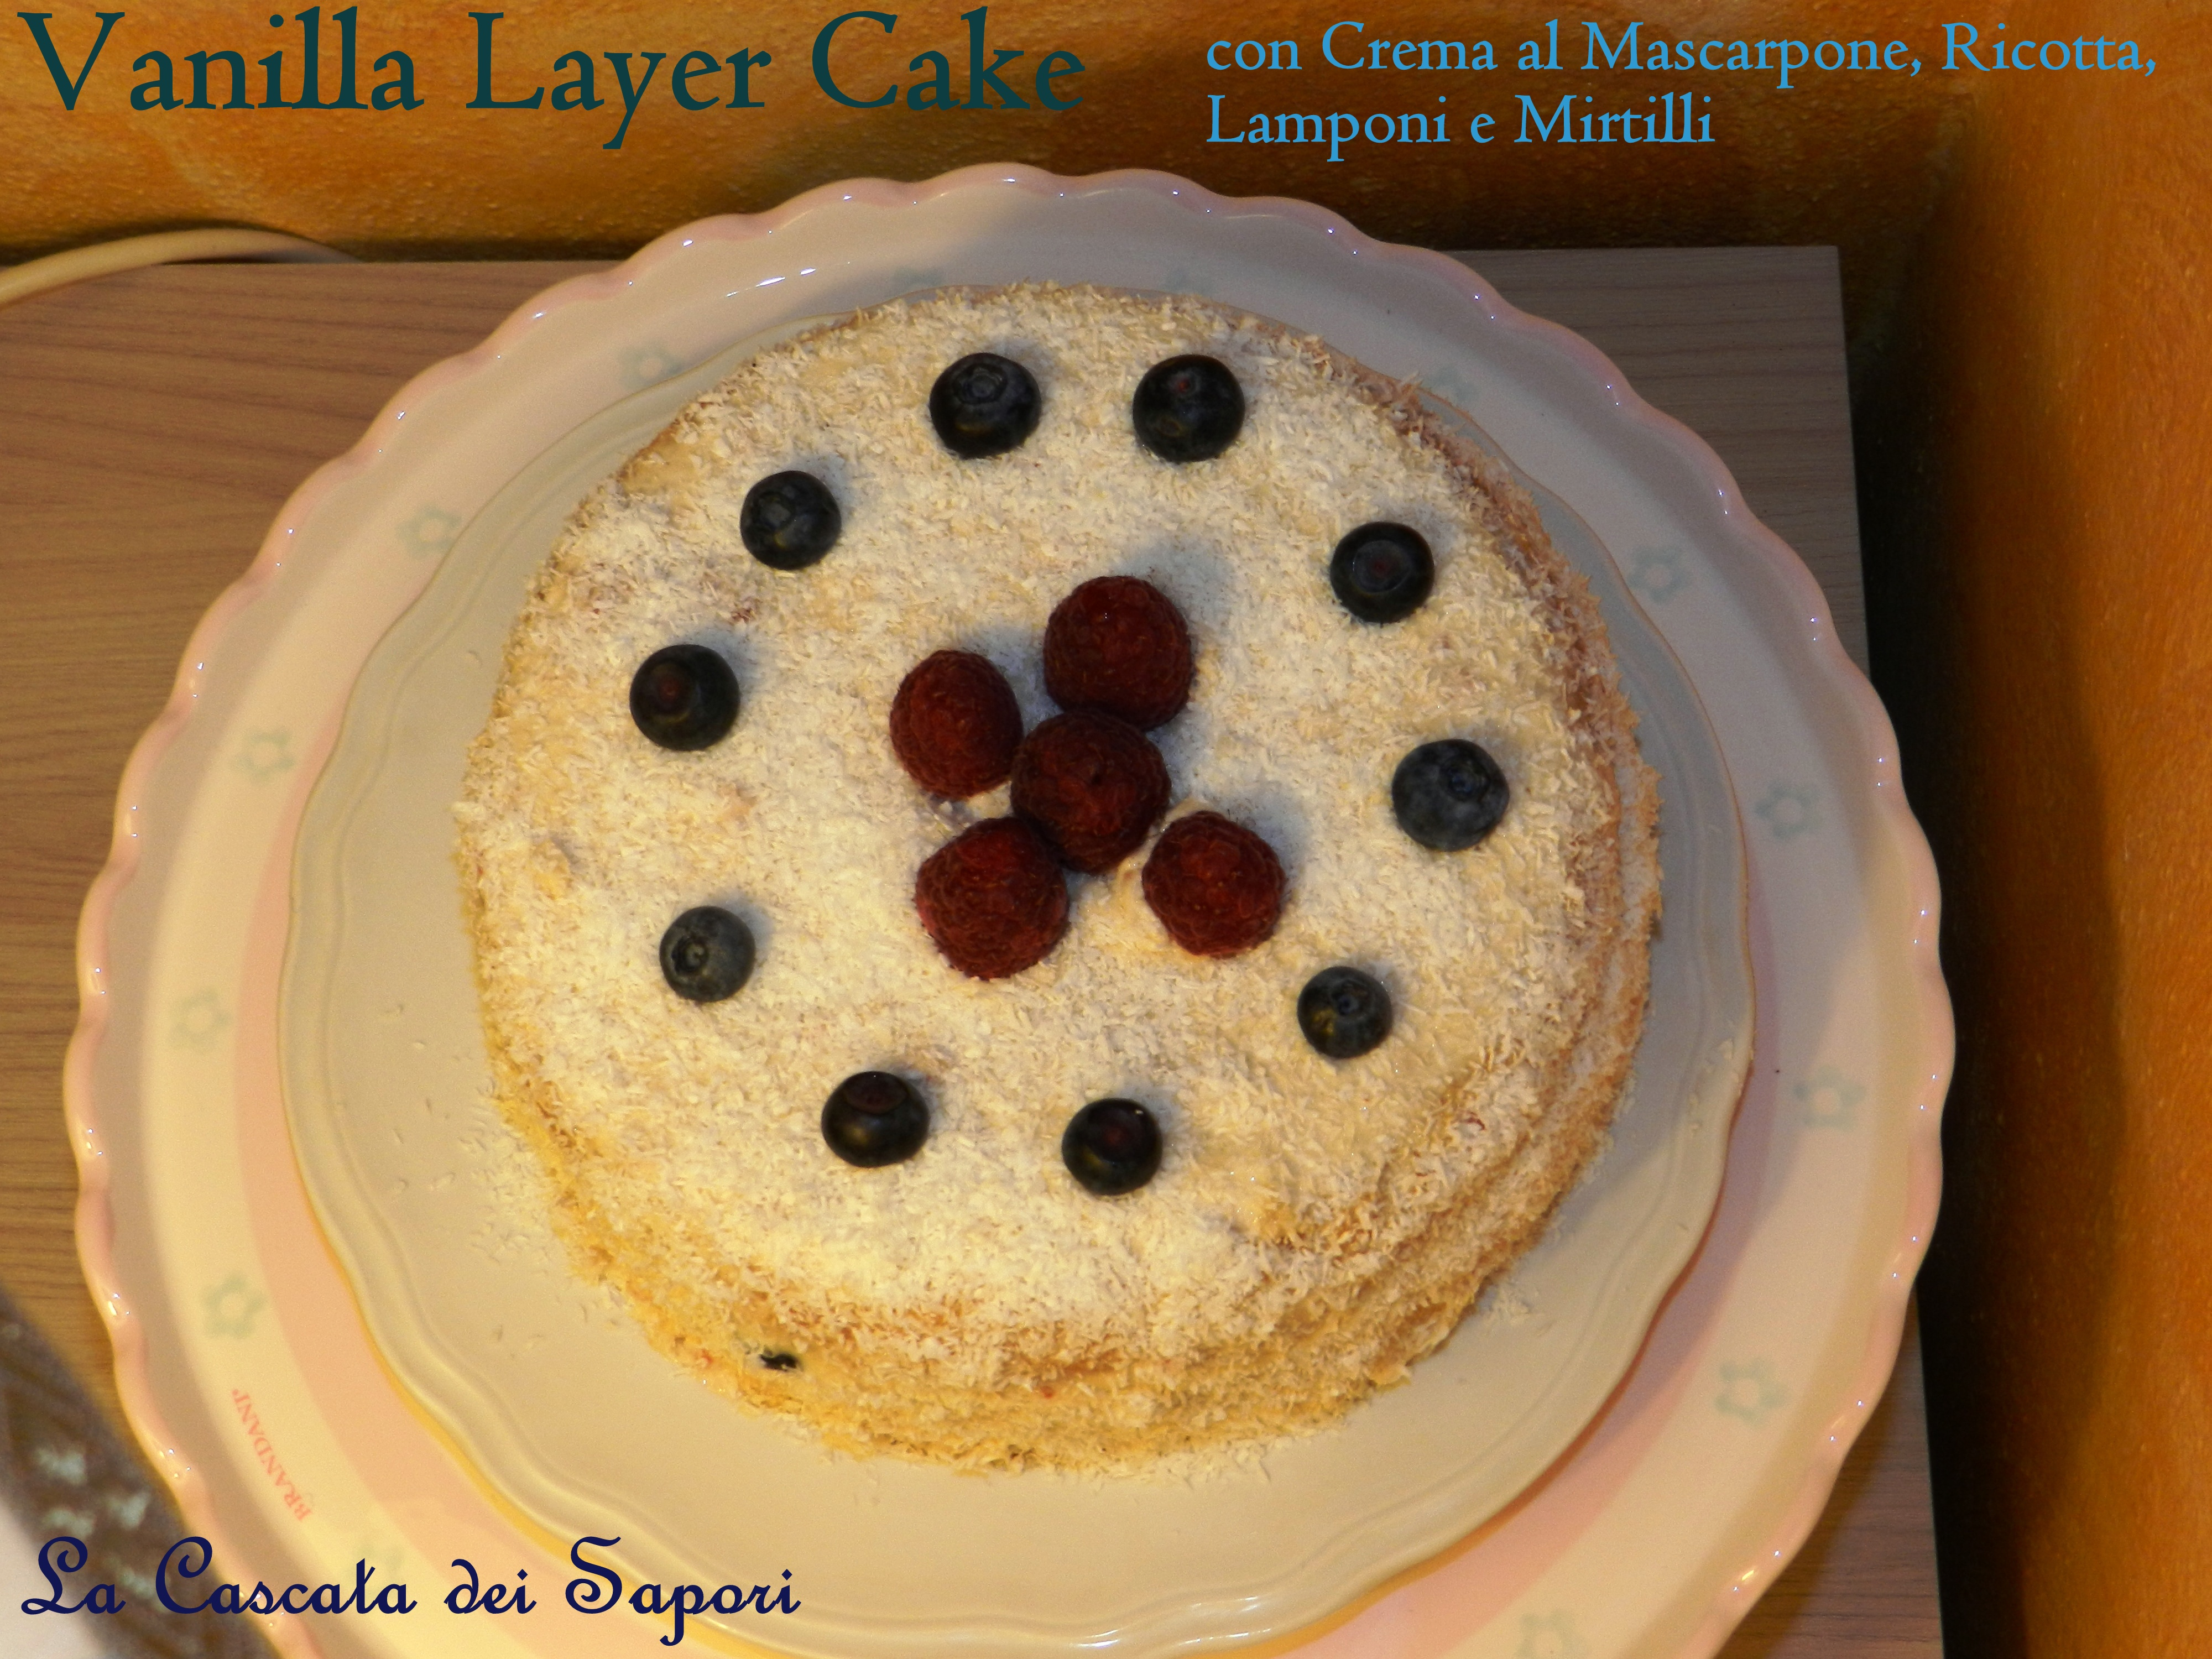 Vanilla Layer Cake 2